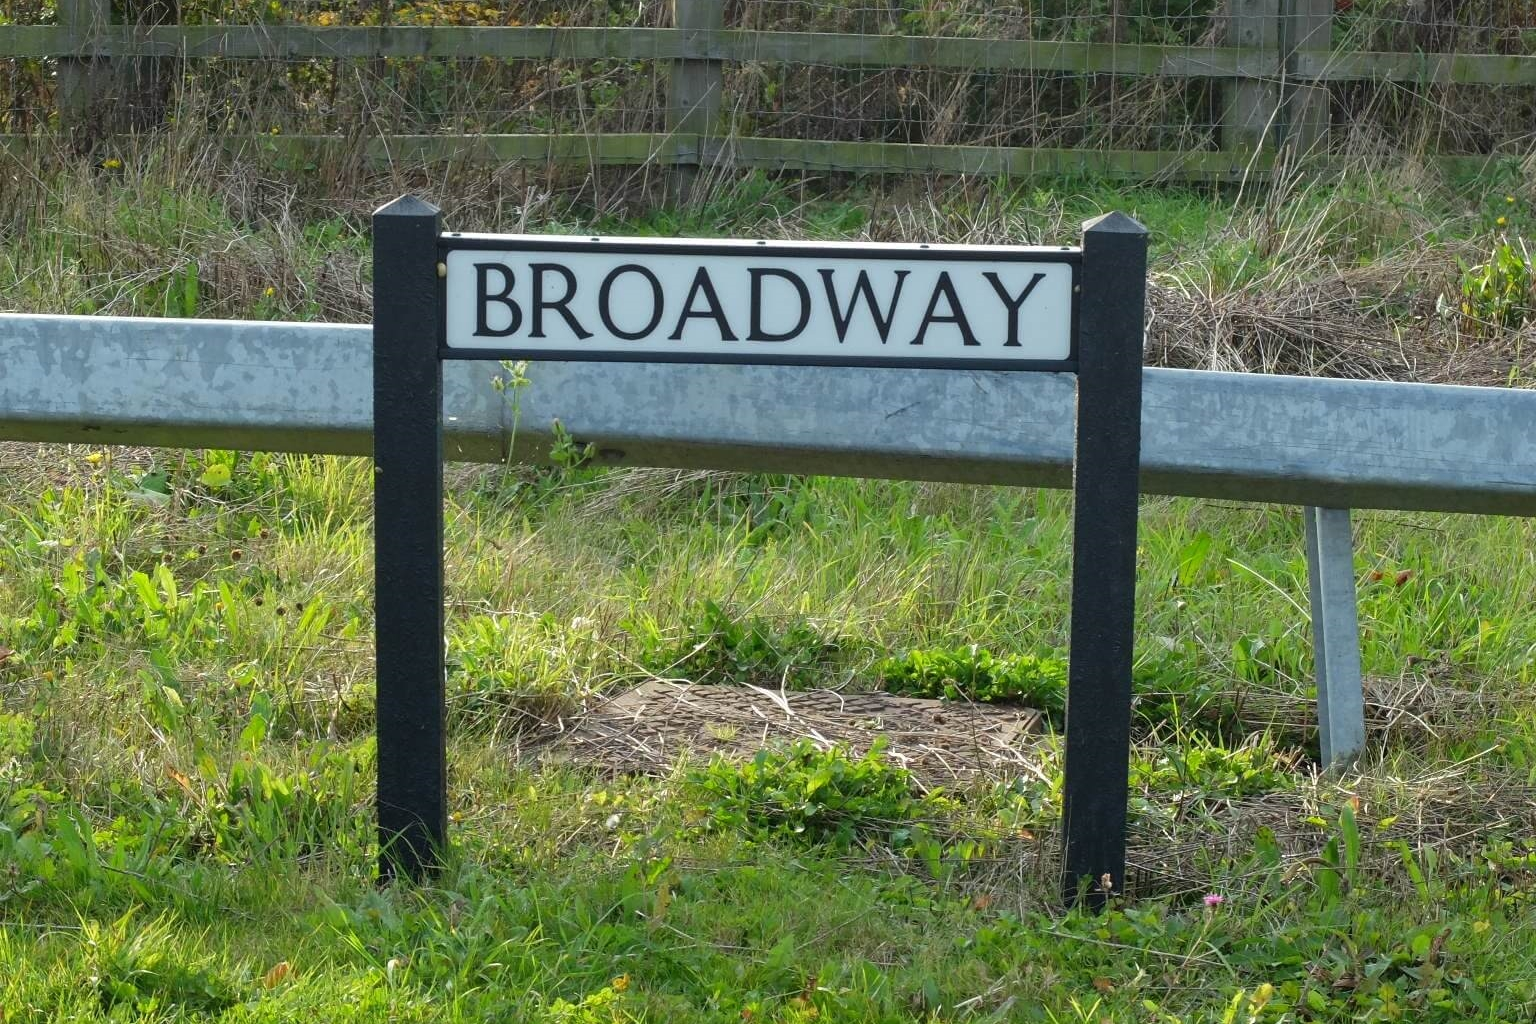 Broadway road sign on the side of the road.